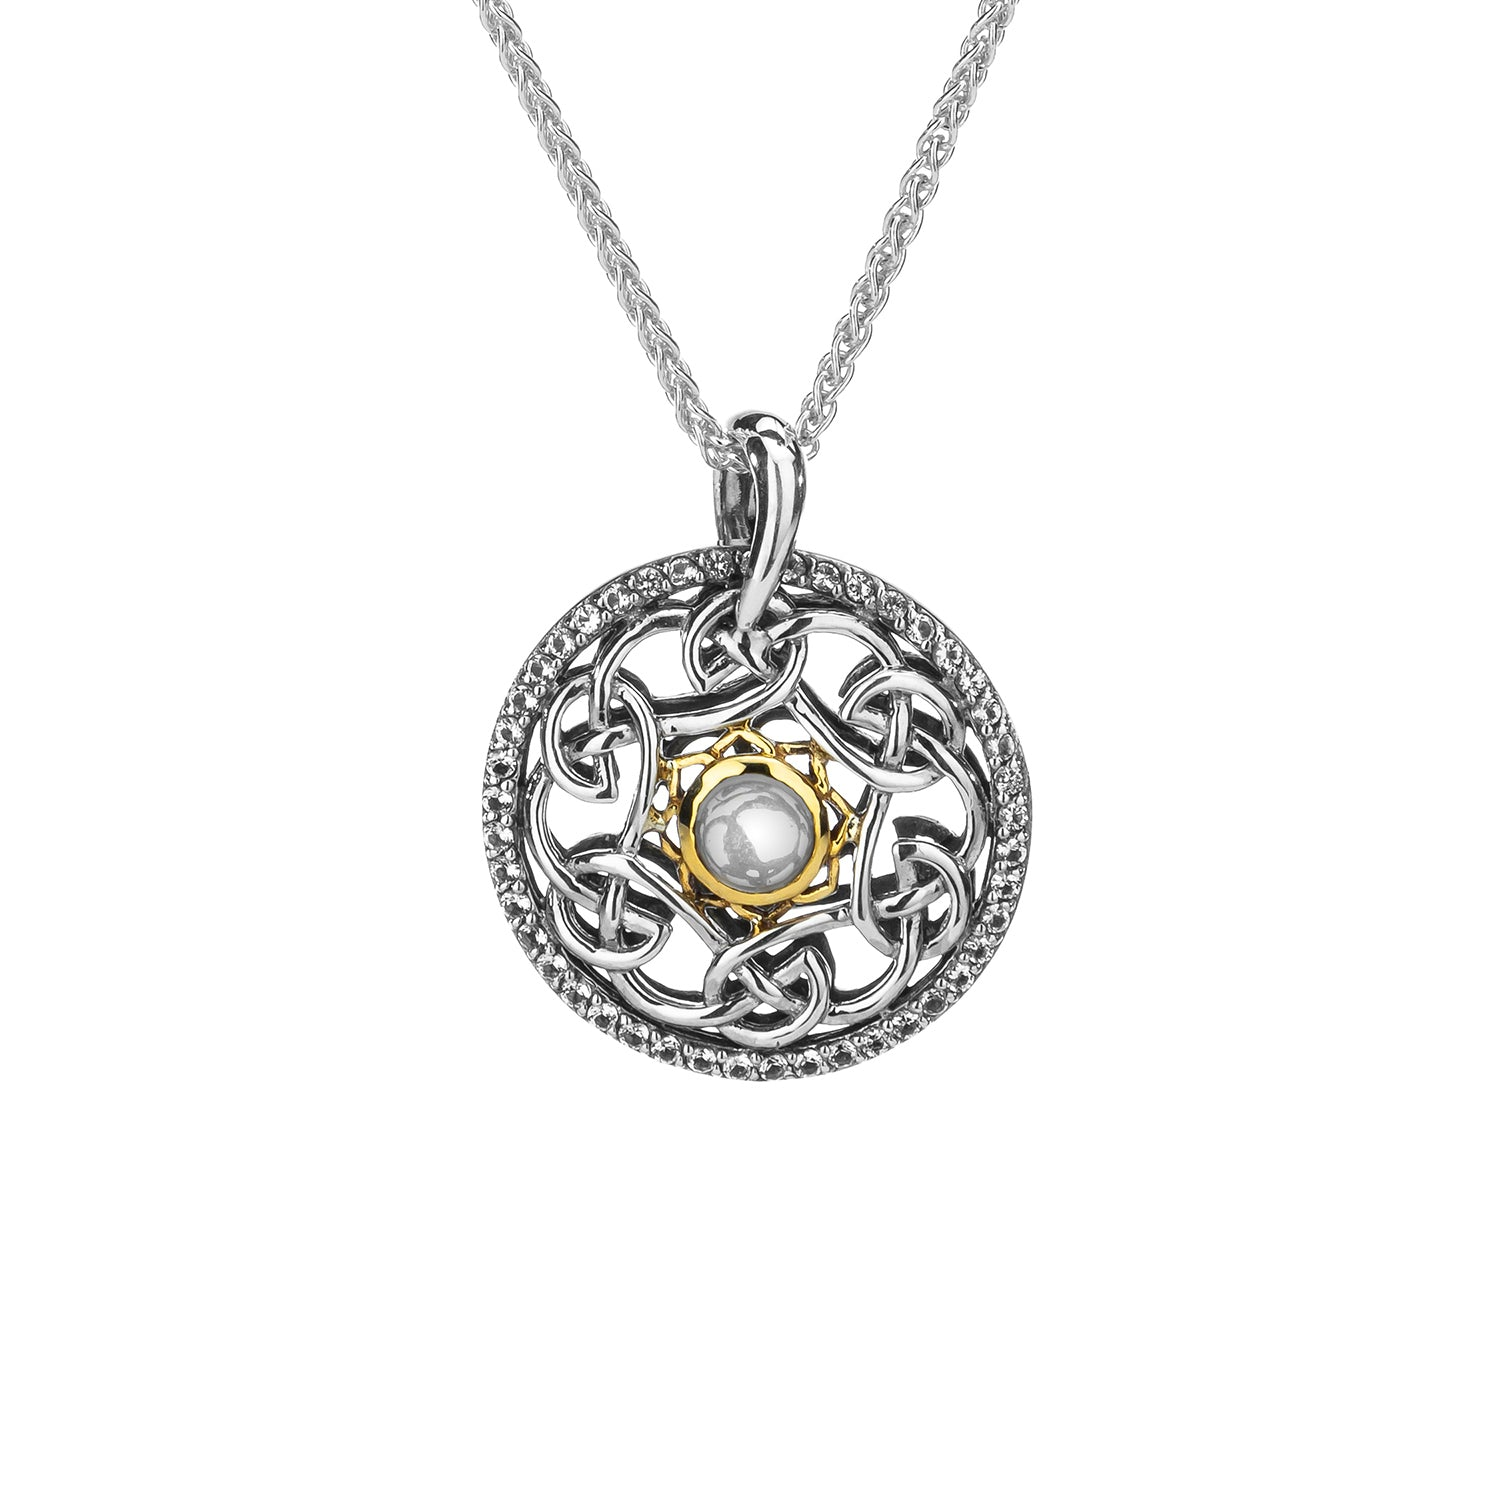 Pendant Oxidized 10k White Topaz Cab Lovers Knot Tempest Pendant from welch and company jewelers near syracuse ny